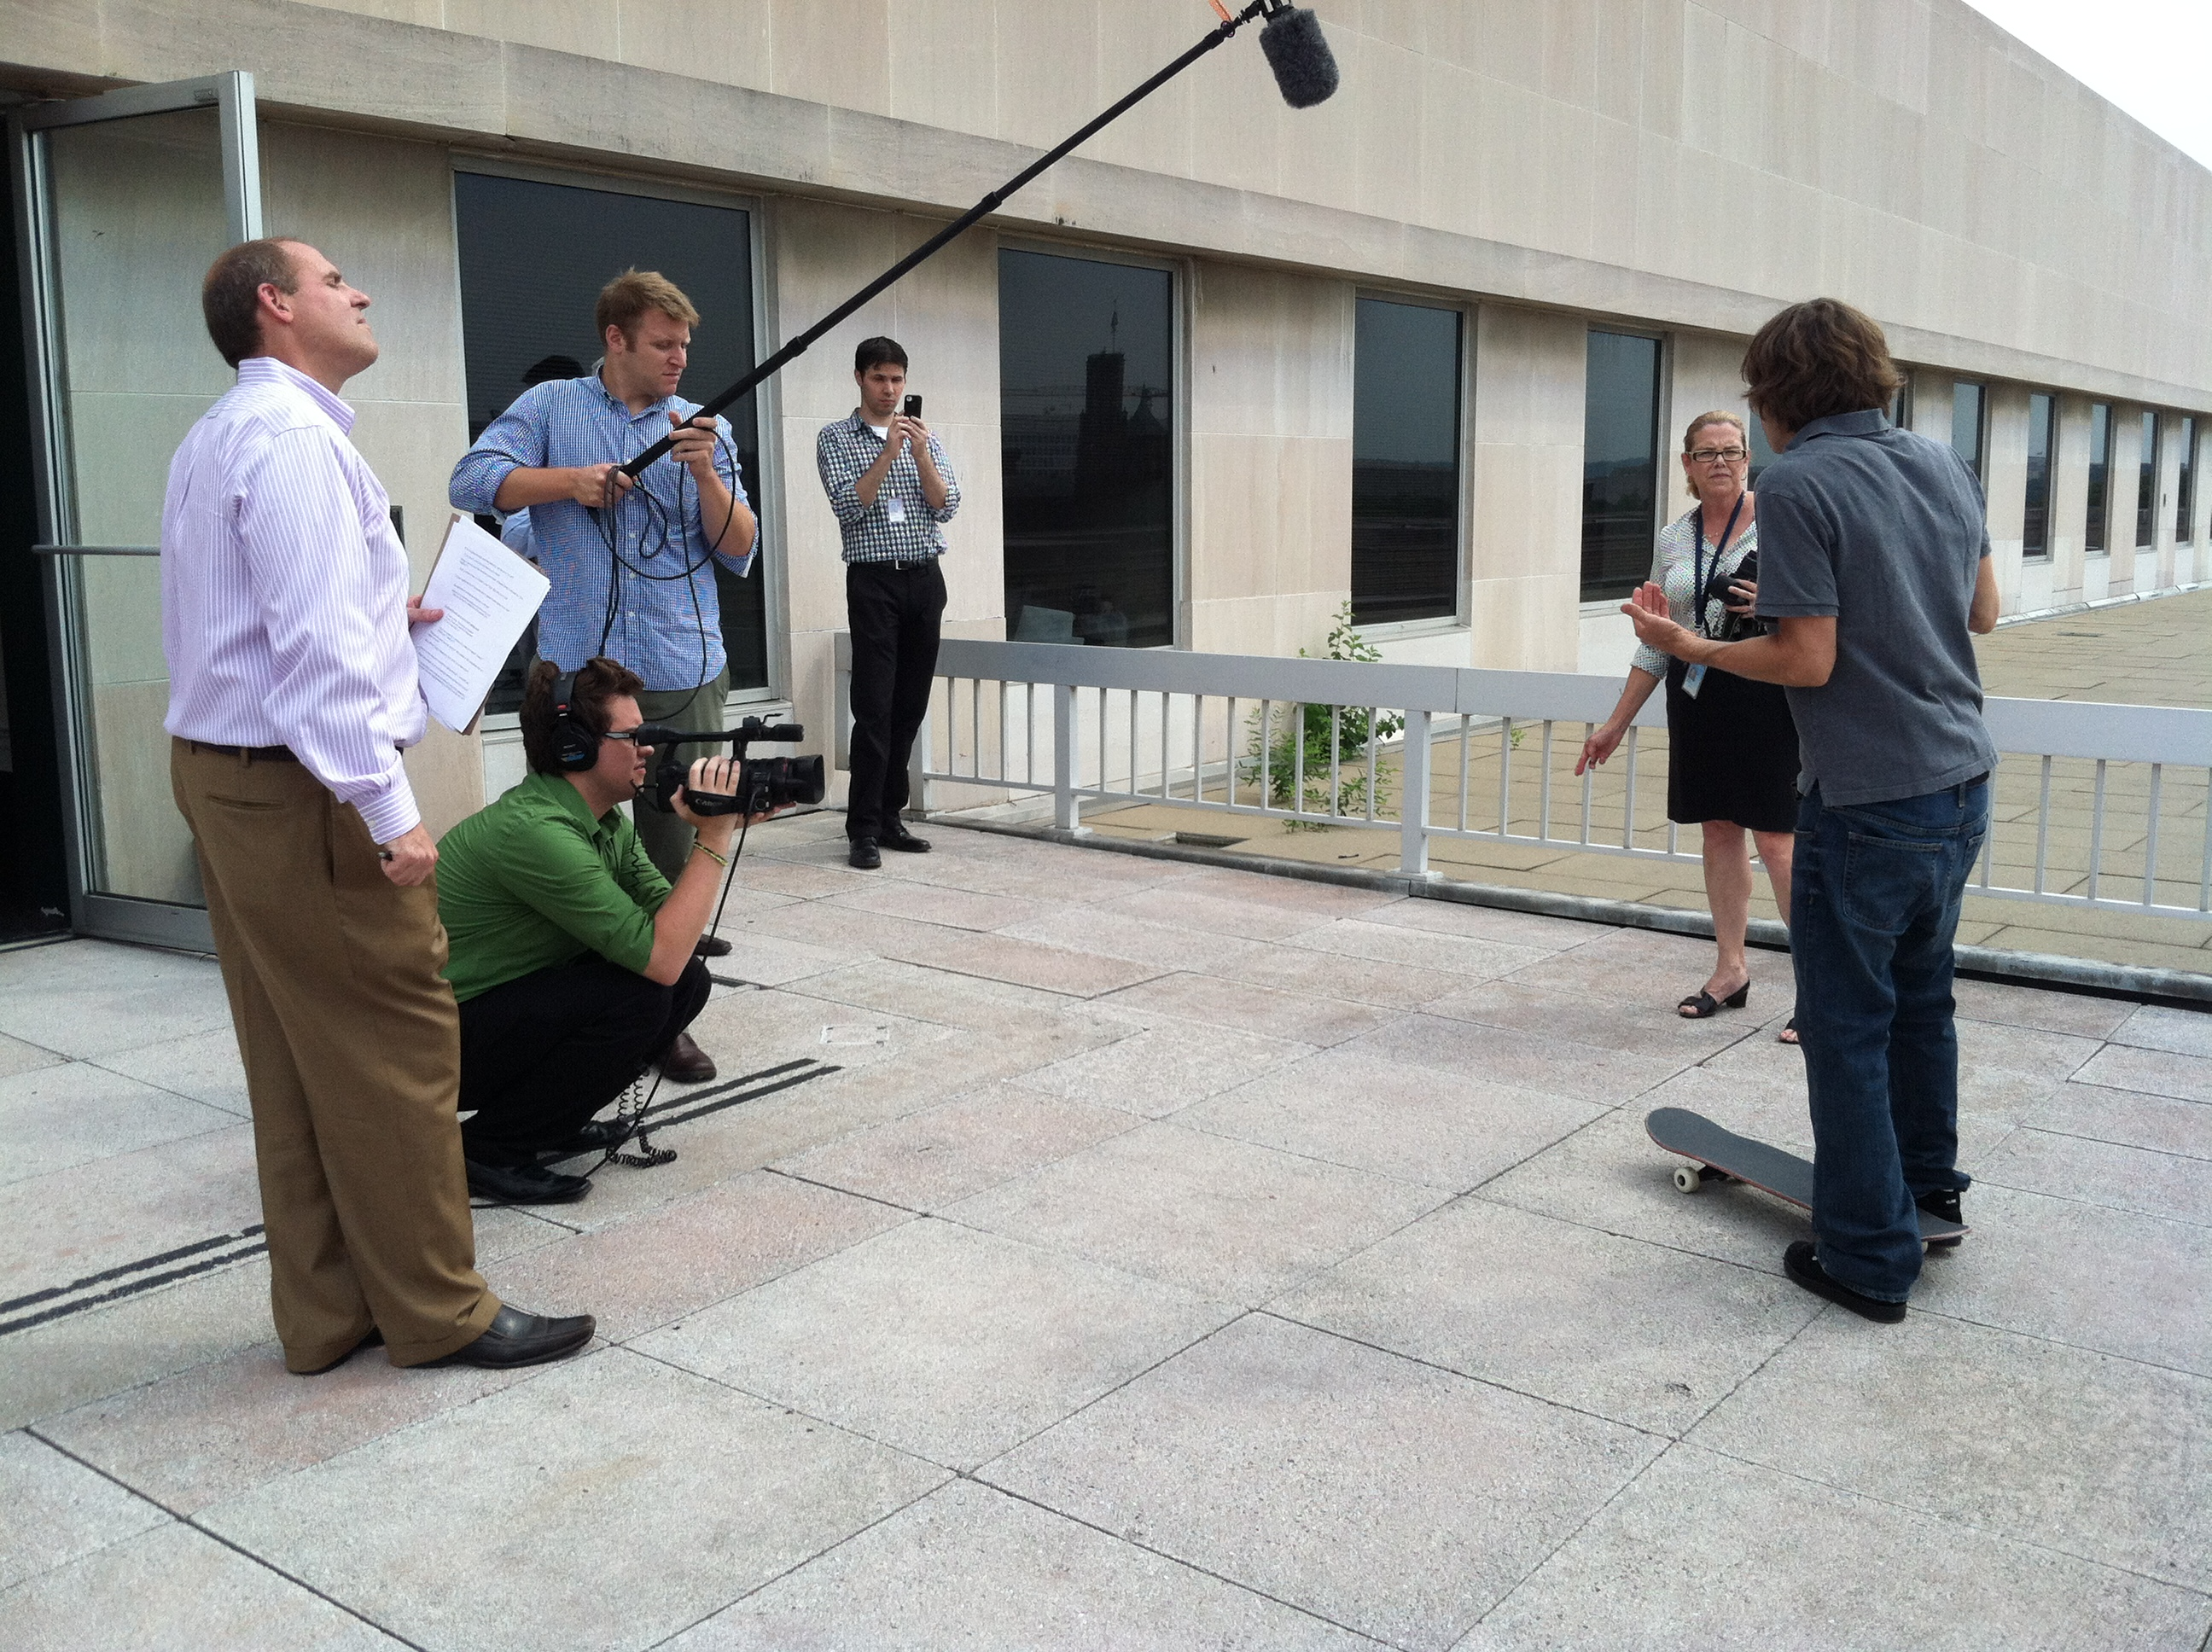 Kevin Borow mans the camera at the Rodney Mullen interview.